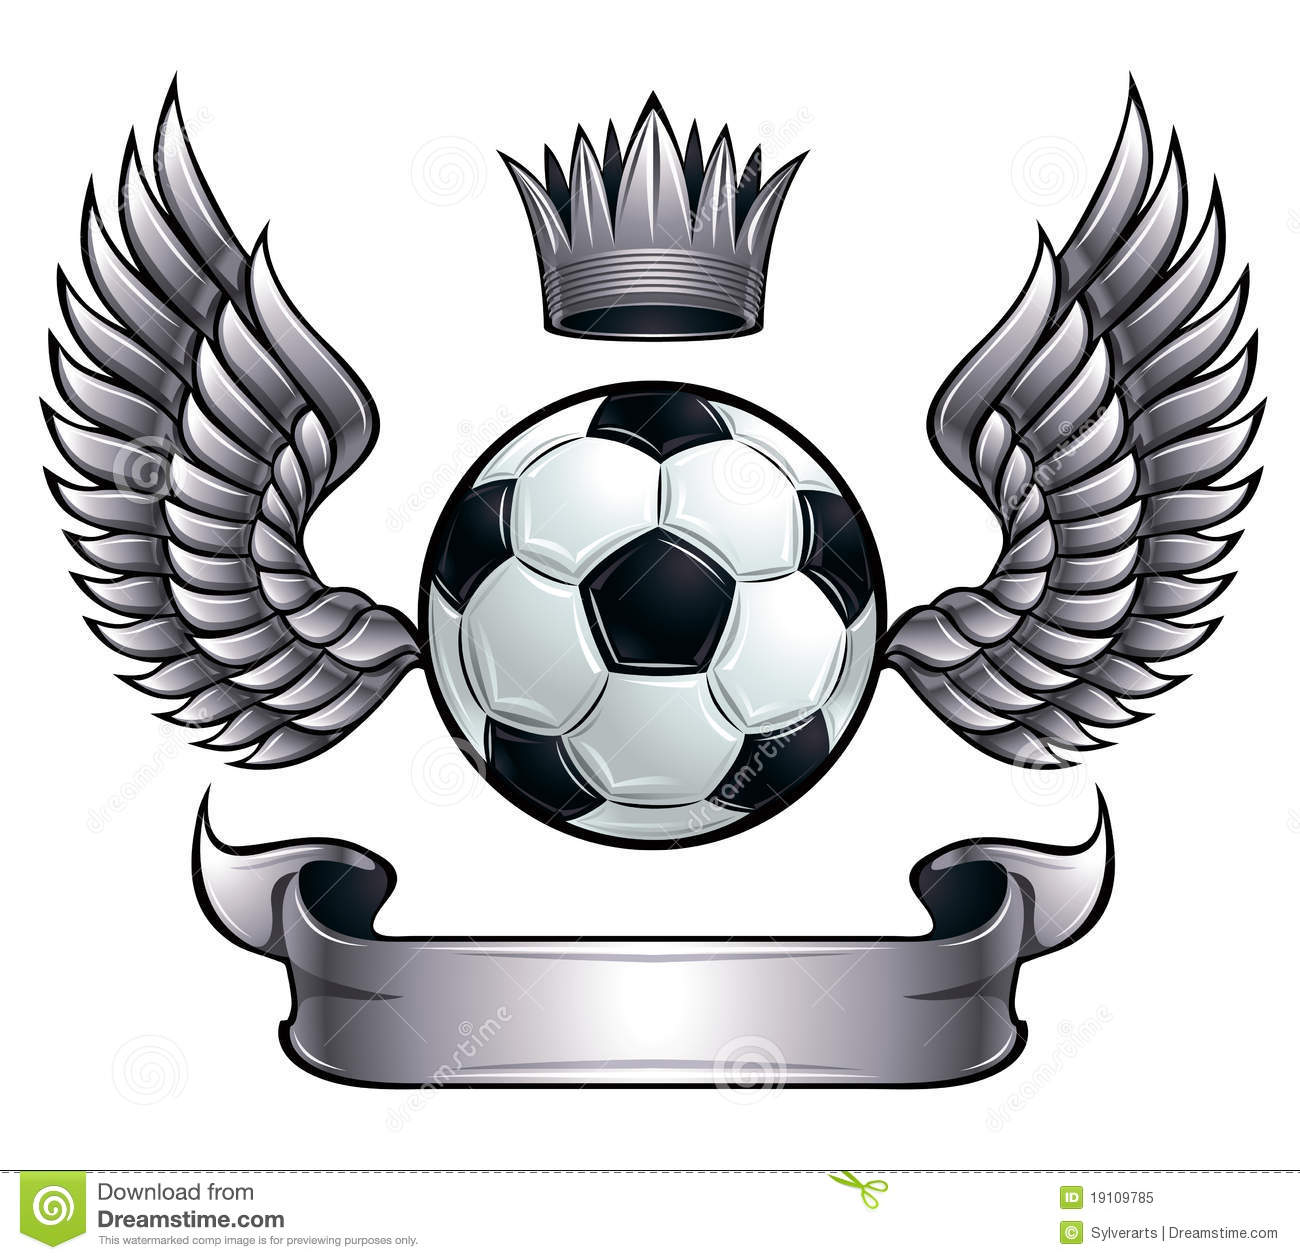 Winged Soccer Ball Emblem. Royalty Free Stock Photo - Image: 19109785